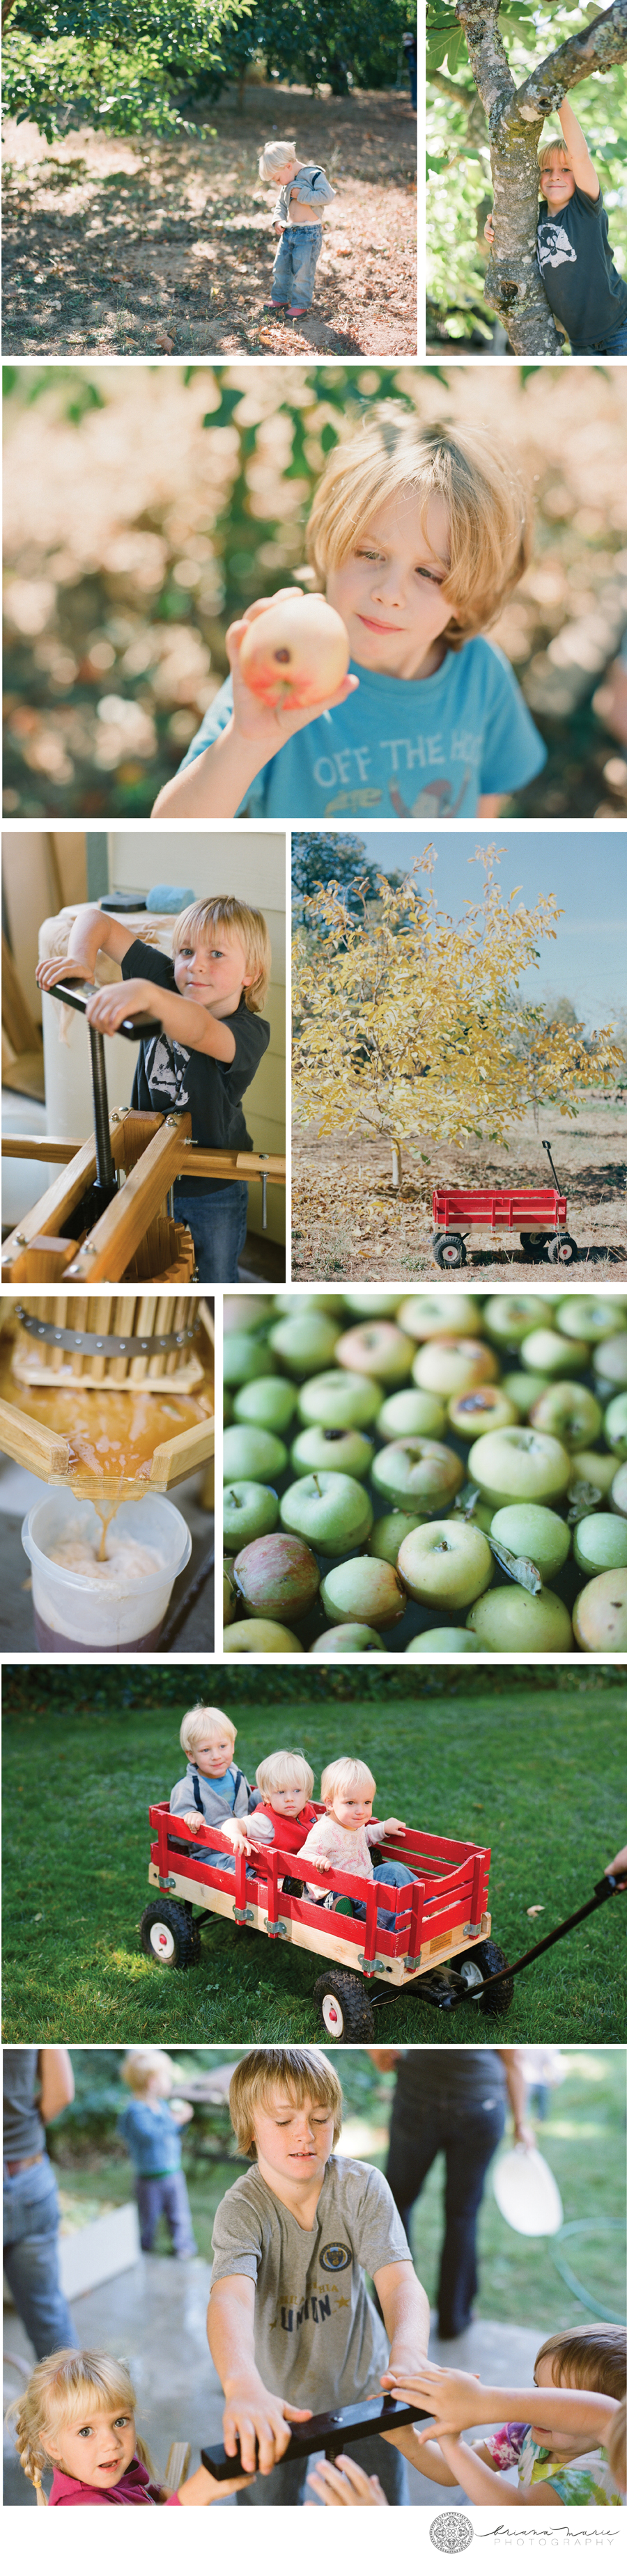 applepressing